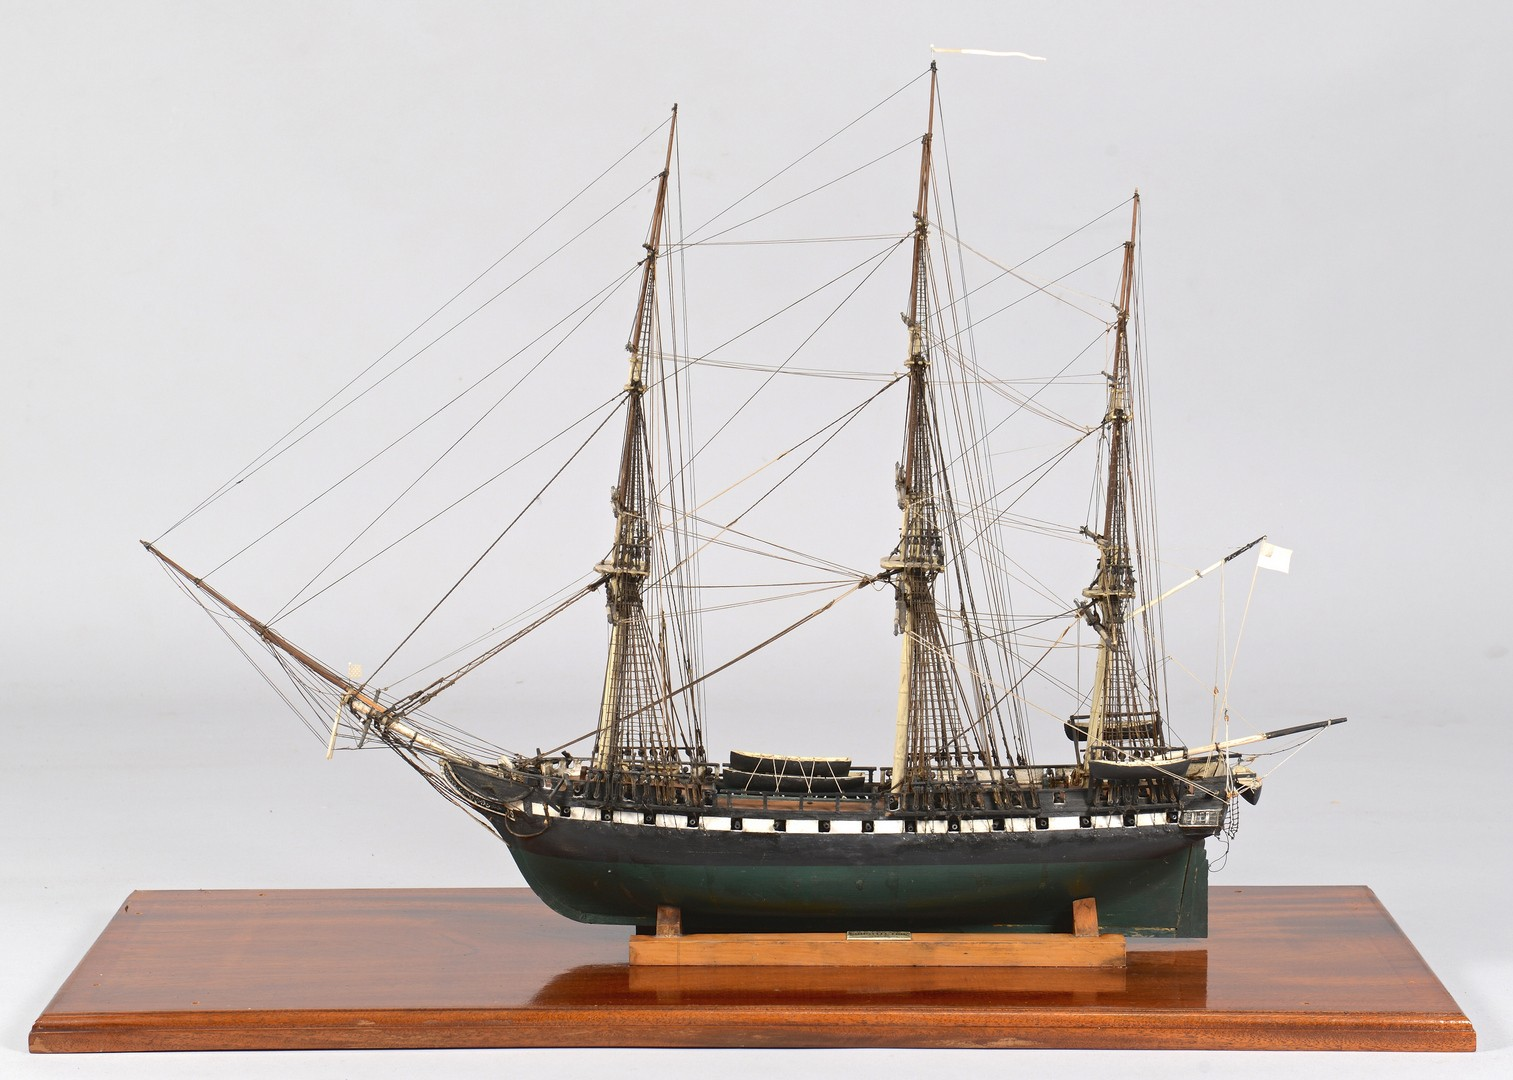 Lot 232: Cased Model, U.S.S. Constitution by Walter C. Leav